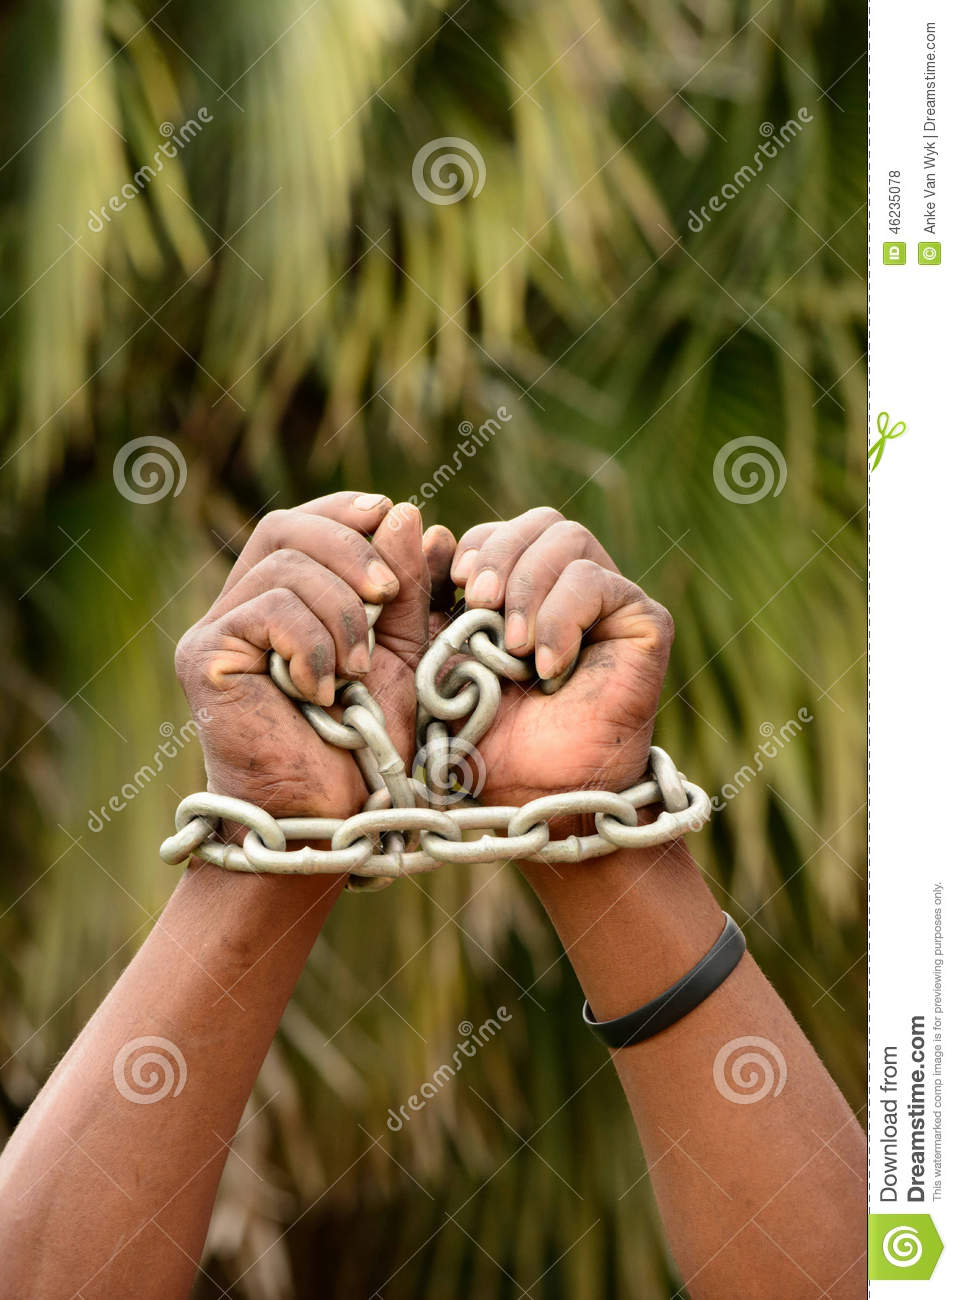 imprisonment puts freedom in chains